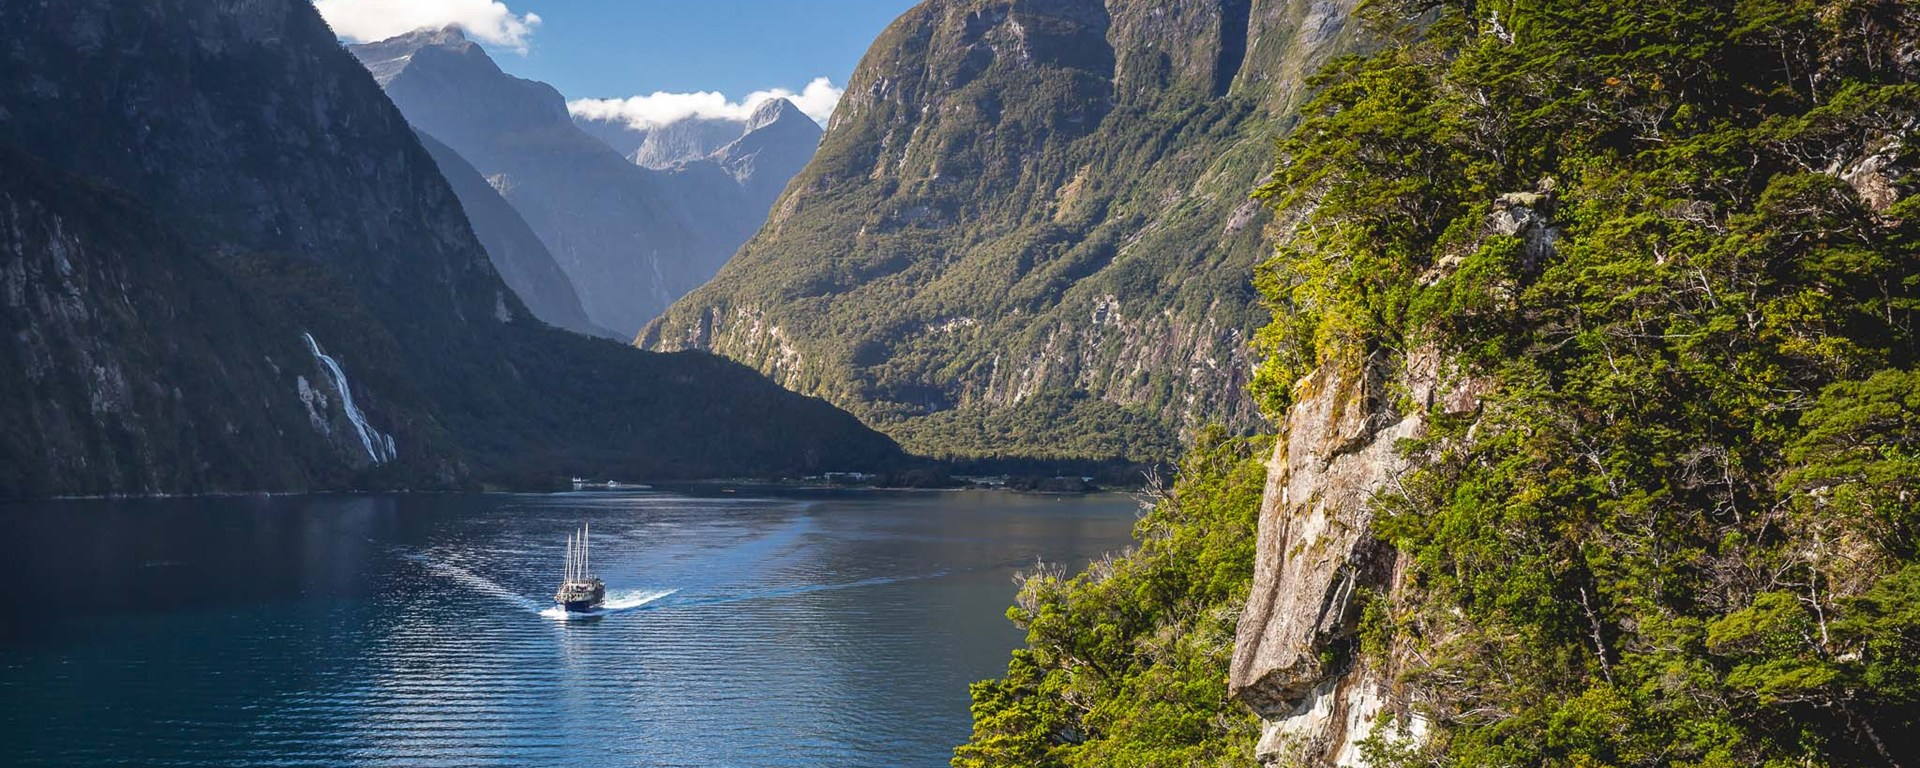 HQ Milford Sound Wallpapers | File 485.07Kb